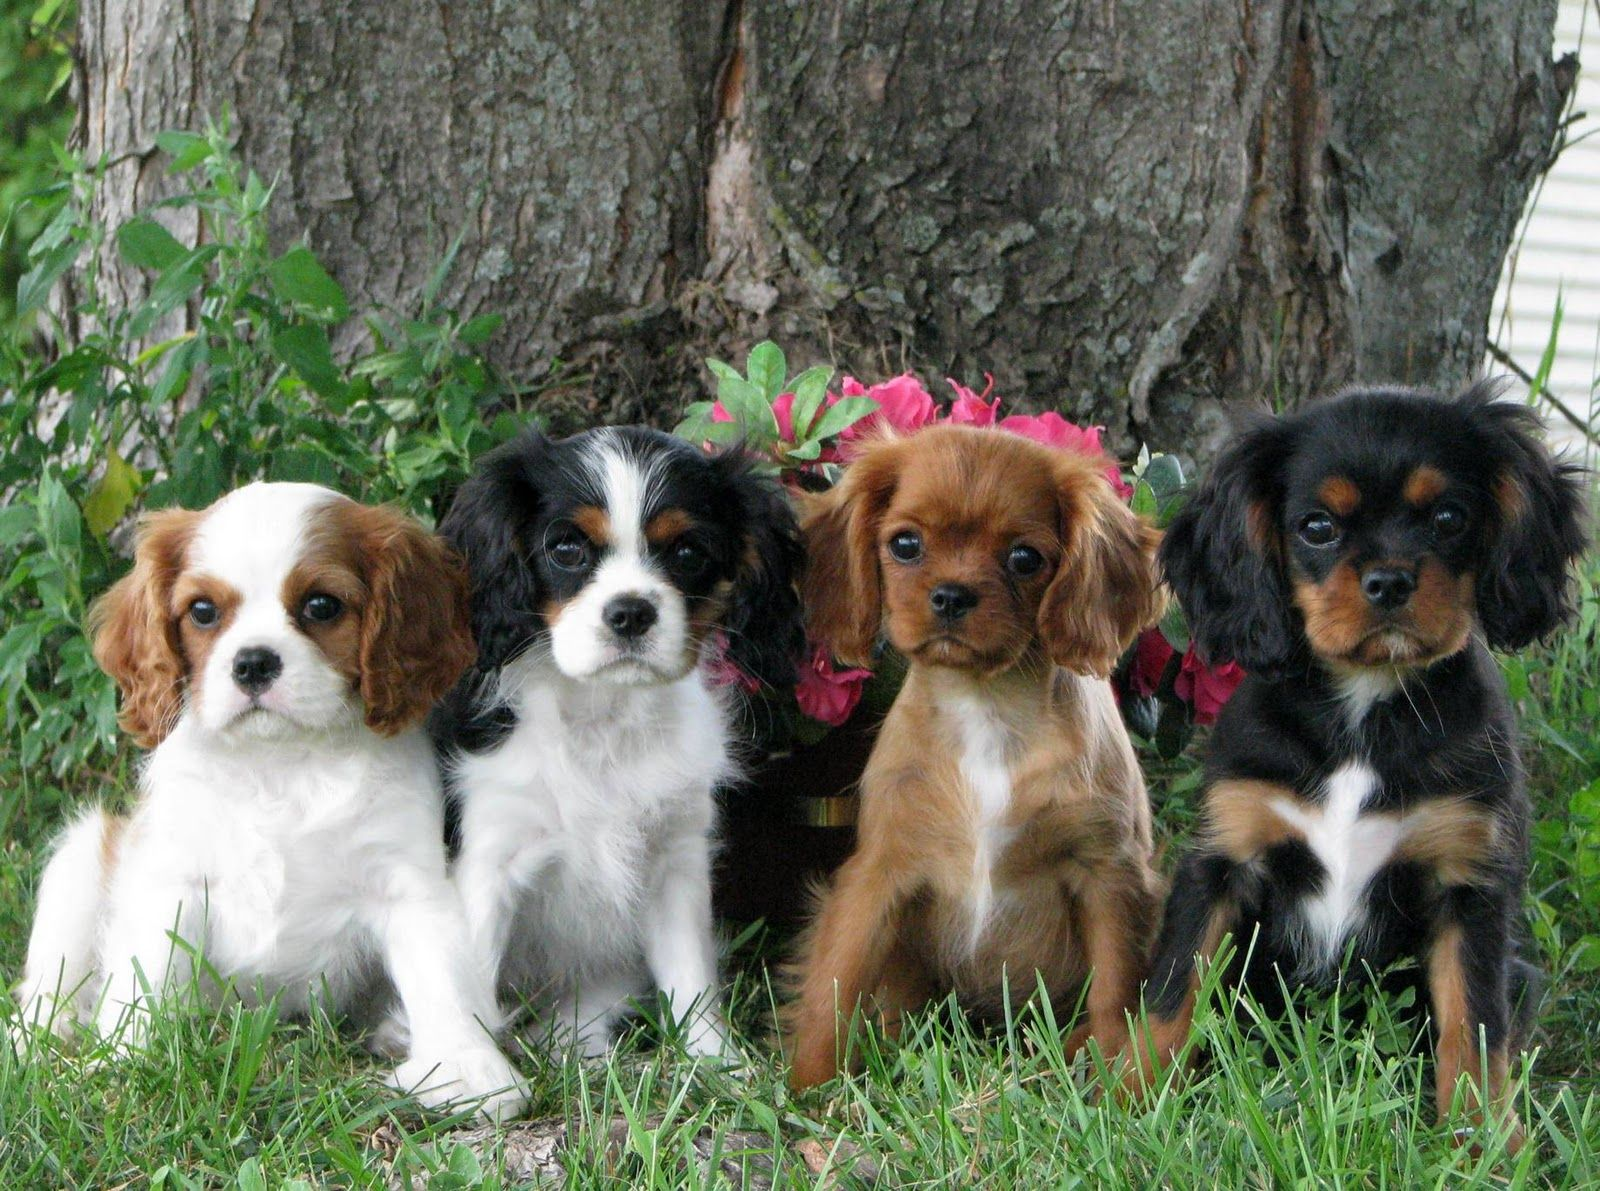 cavalier king charles spaniel dog | Cavalier King Charles Spaniel Puppies | Puppies Dog Breed Information ...